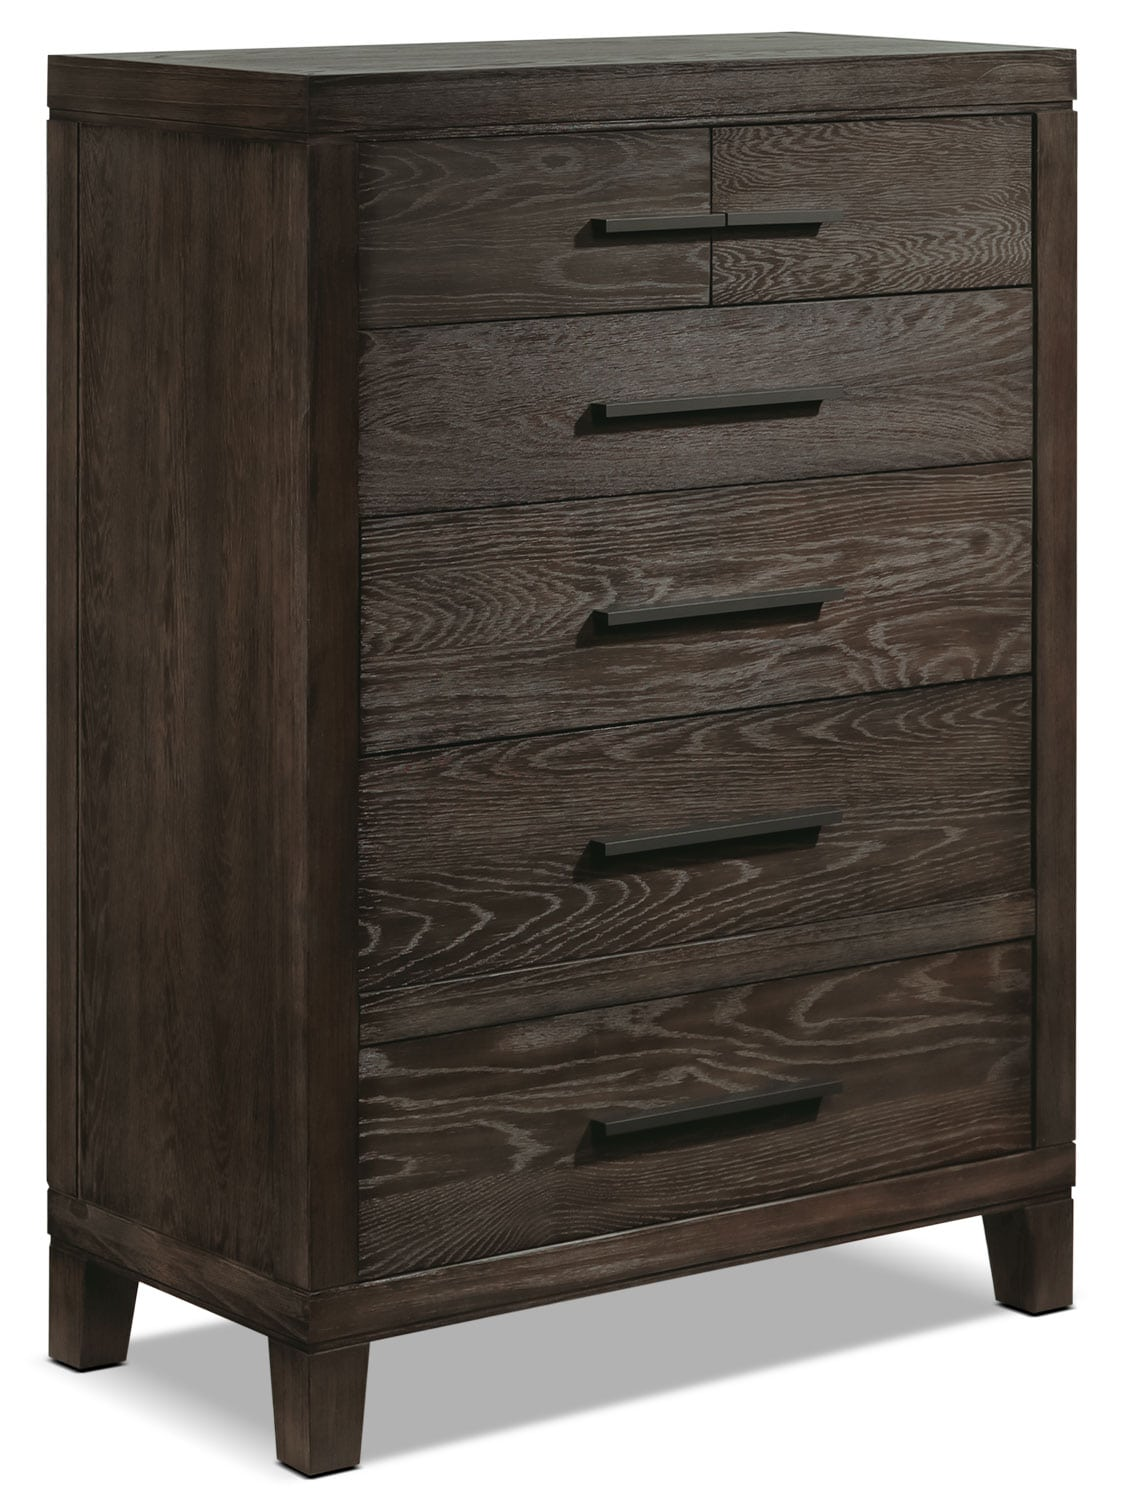 Bravo 6-Drawer Chest - Platinum Oak